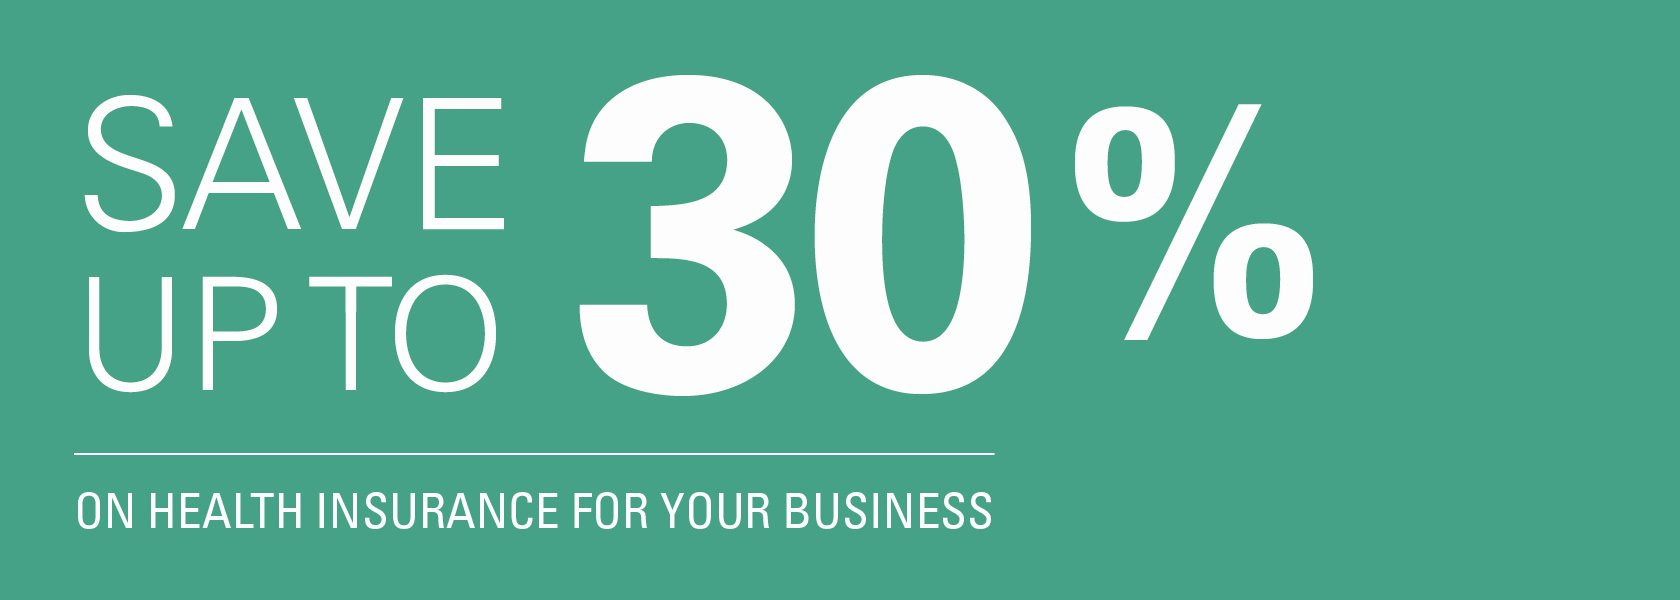 Save up to 30% on Health Insurance for your business